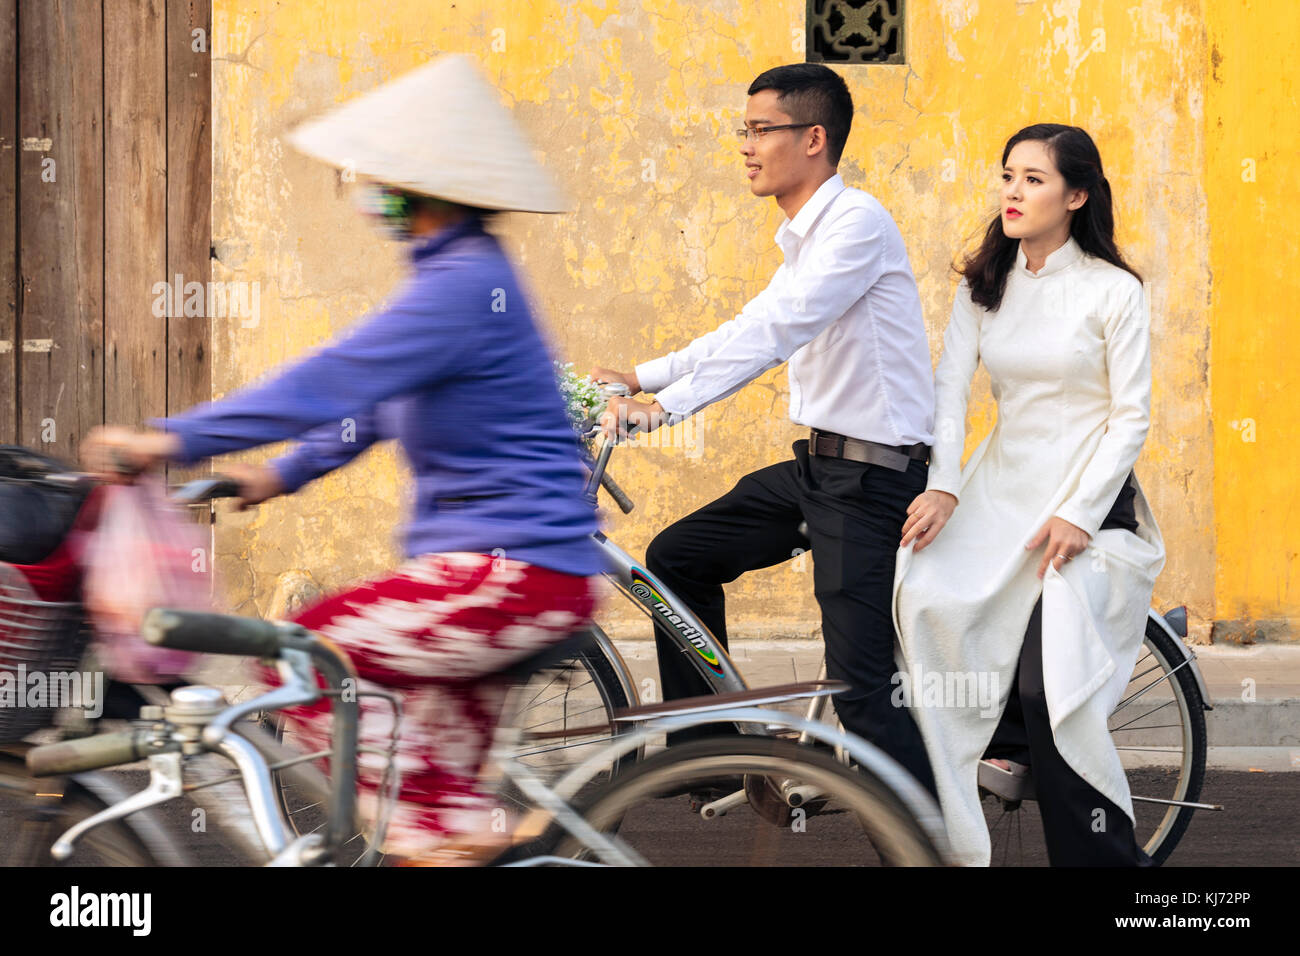 Young Newly Married Couple on a Bicycle in the Unesco World Heritage listed history centre of Hoi An, Vietnam - Stock Image